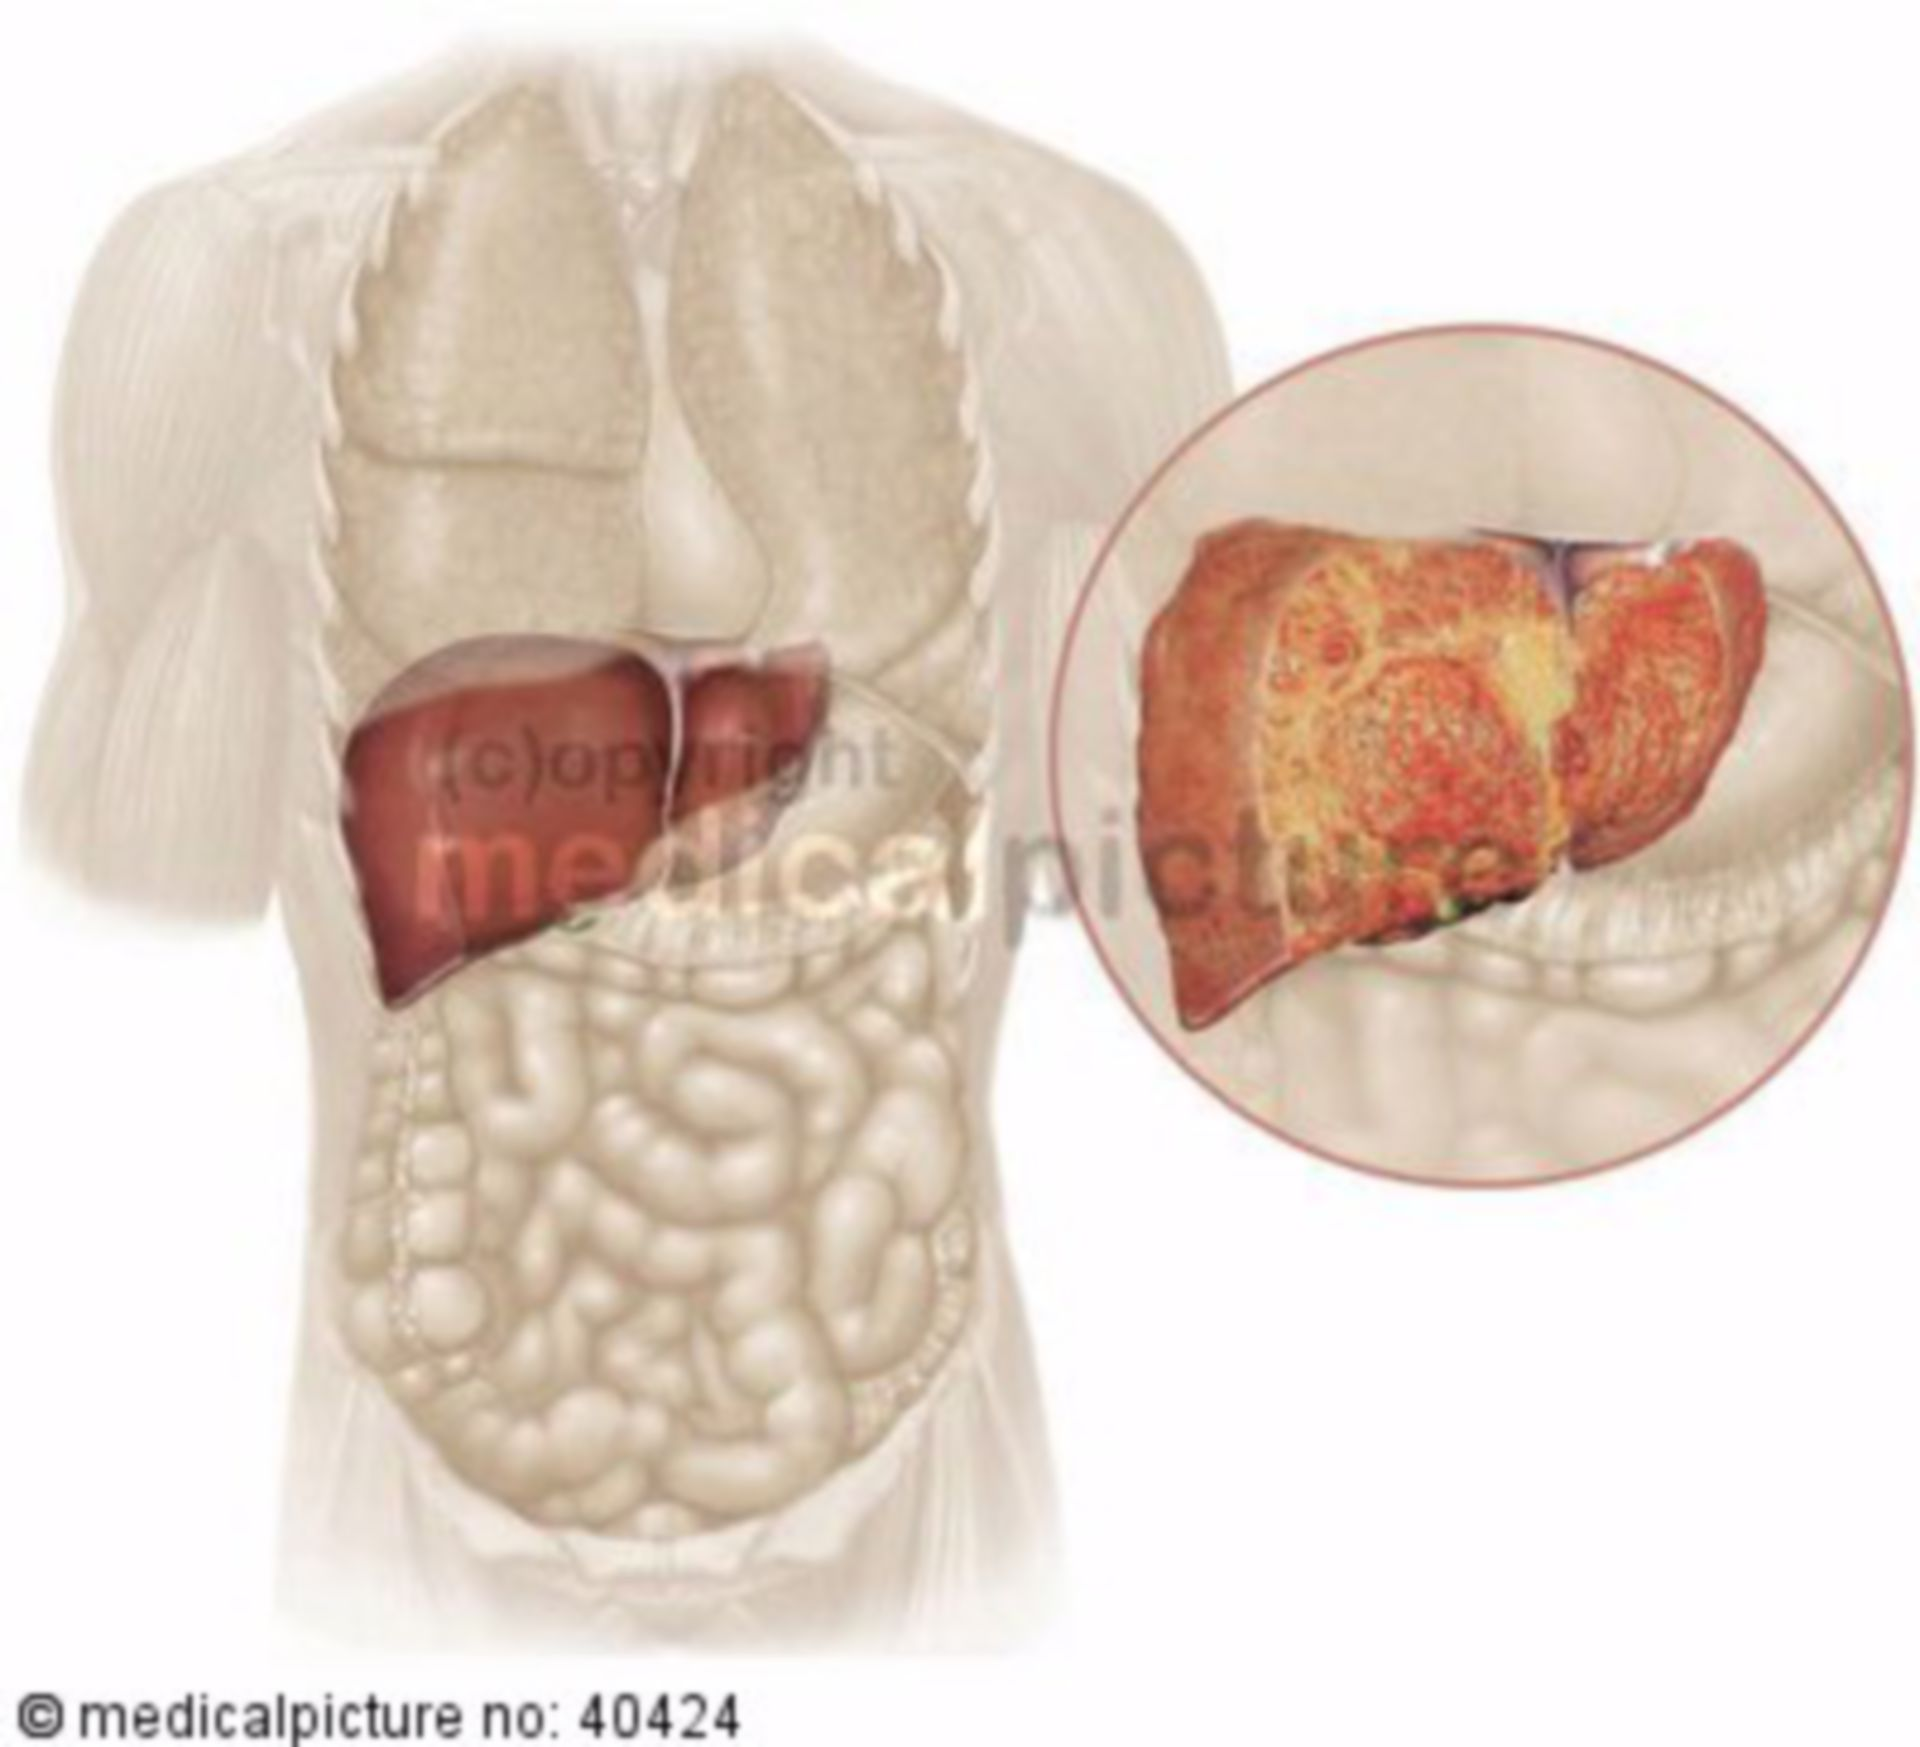 Liver in human body with inflammatory and cirrhotic processes